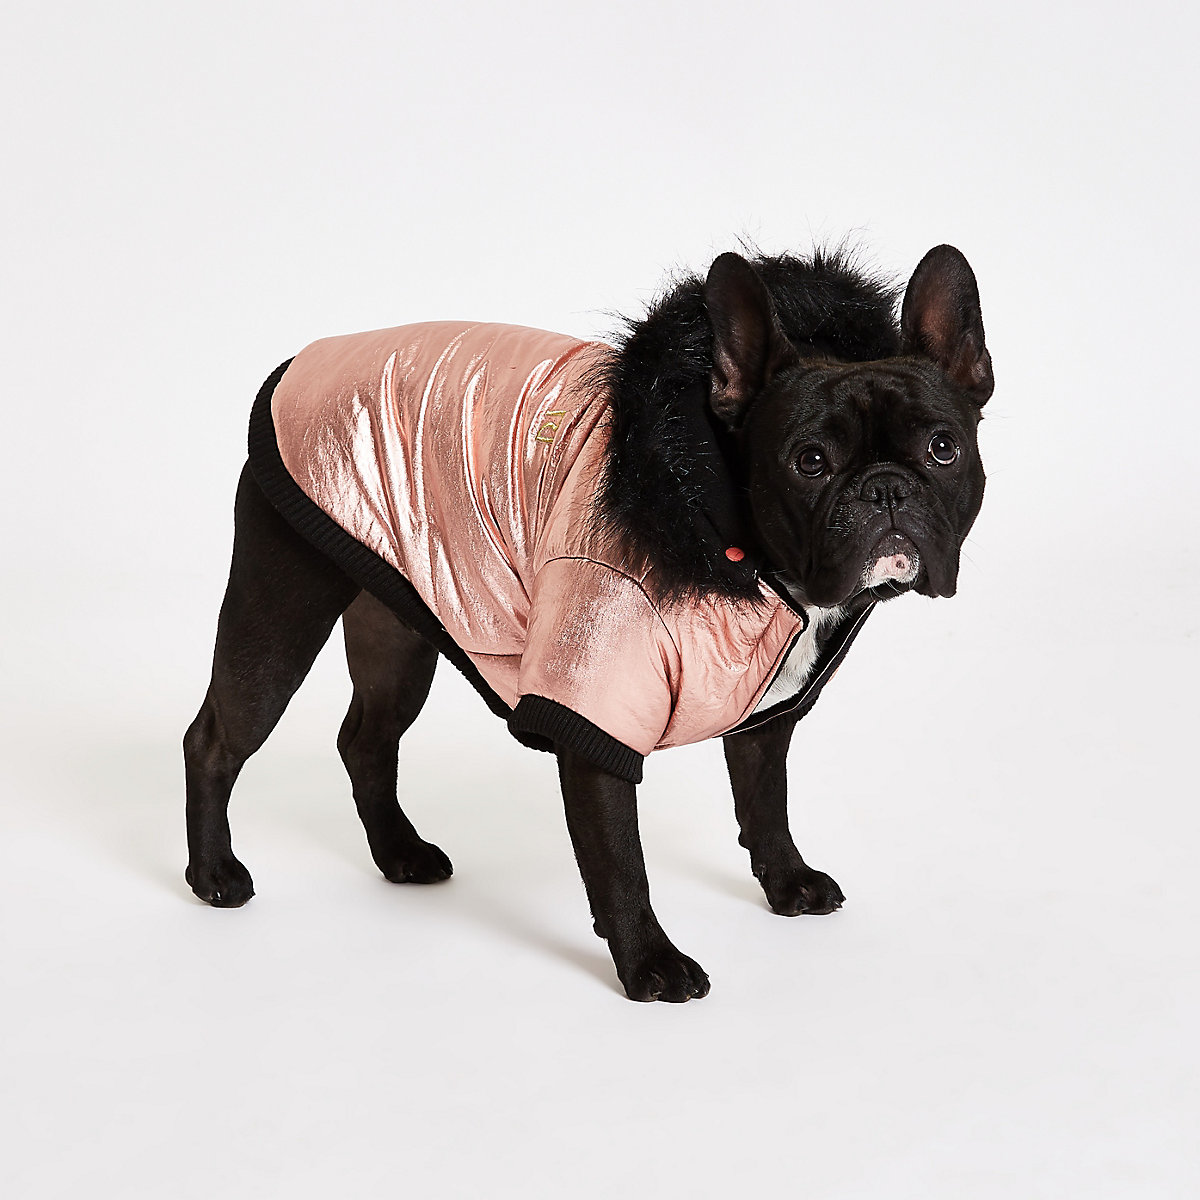 RI Dog Gold dog hooded puffer jacket